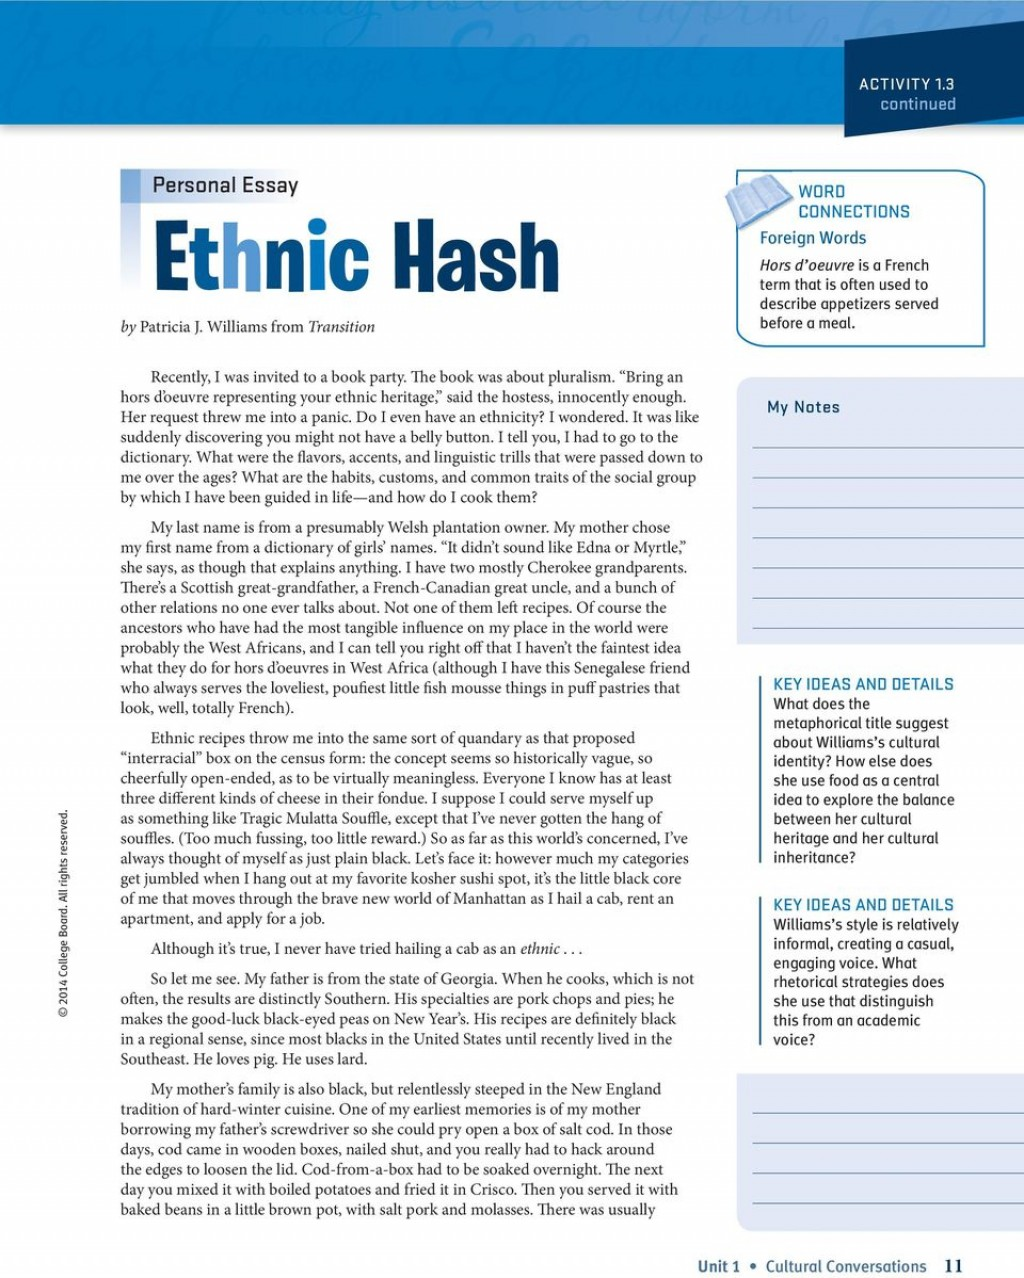 008 Where Worlds Collide Pico Iyer Essay Summary Example Page 11 Top Large